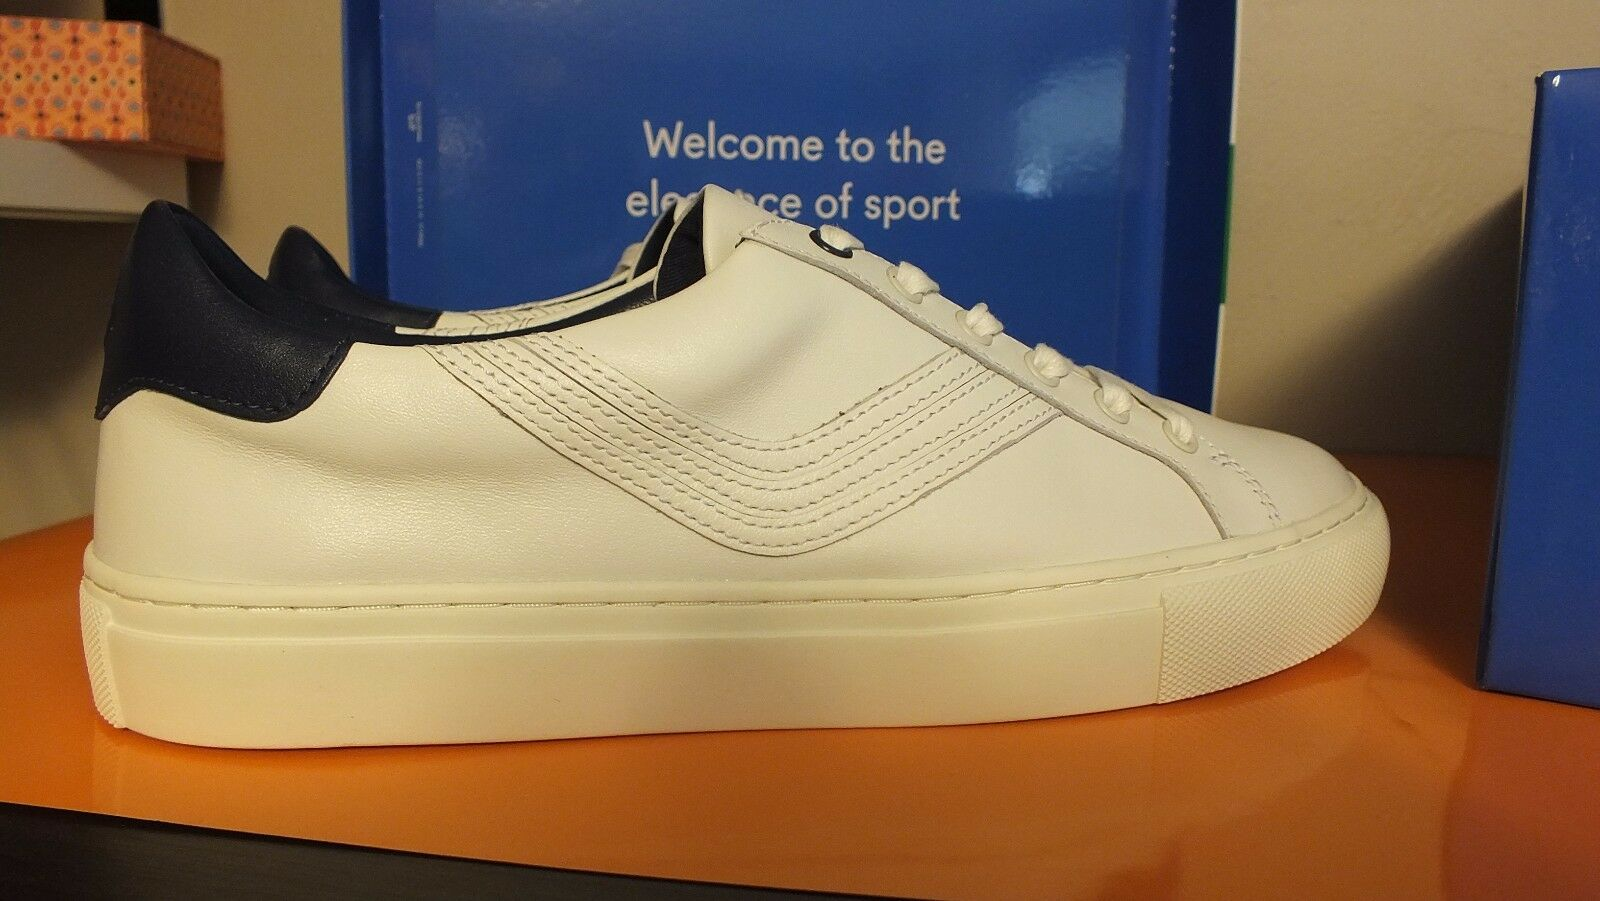 6956a4648fbd Tory Burch Sport Womens Size 9 Leather Lace up SNEAKERS Chevron ...